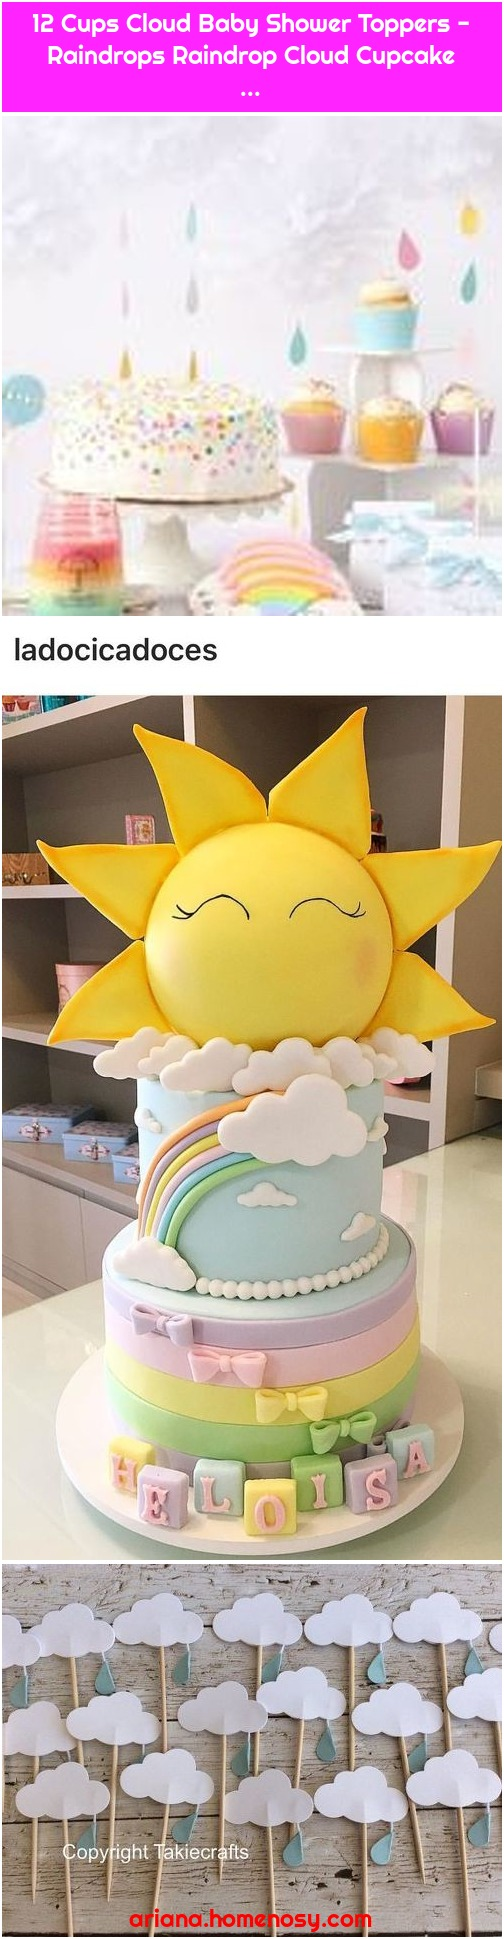 12 Cups Cloud Baby Shower Toppers - Raindrops Raindrop Cloud Cupcake ...